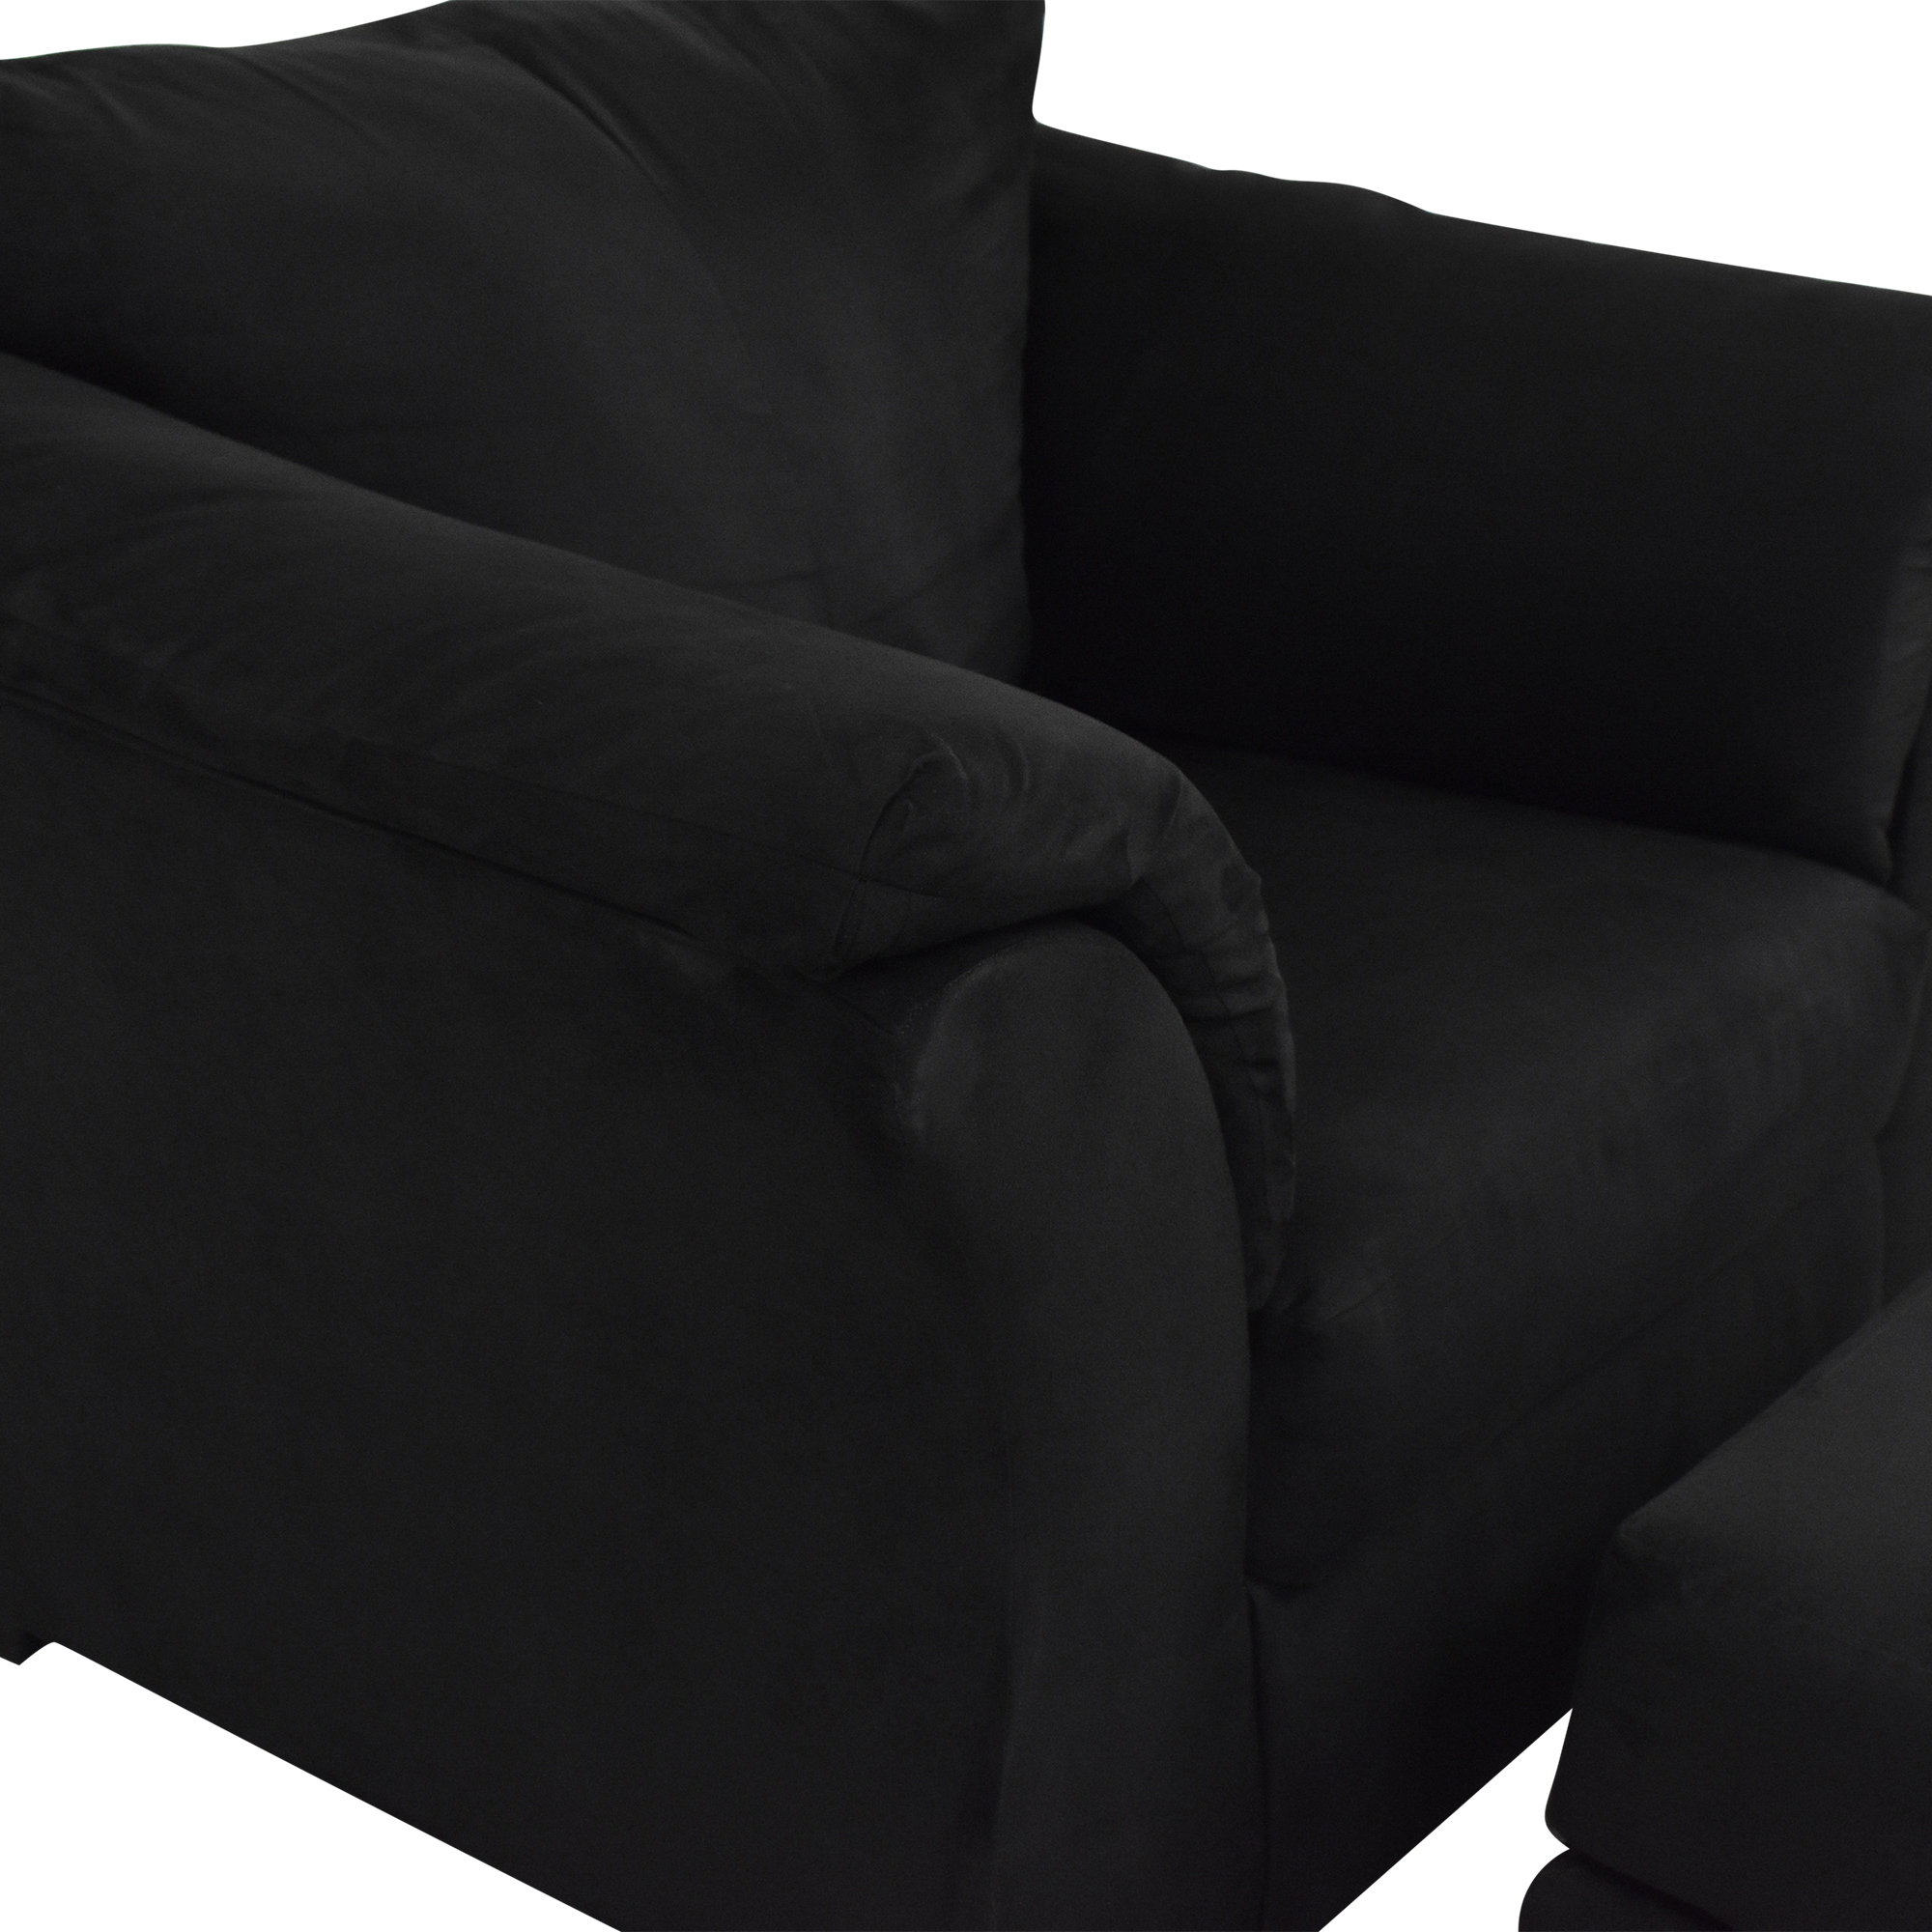 buy Ashley Furniture Ashley Furniture Darcy Cobblestone Chair and Ottoman online